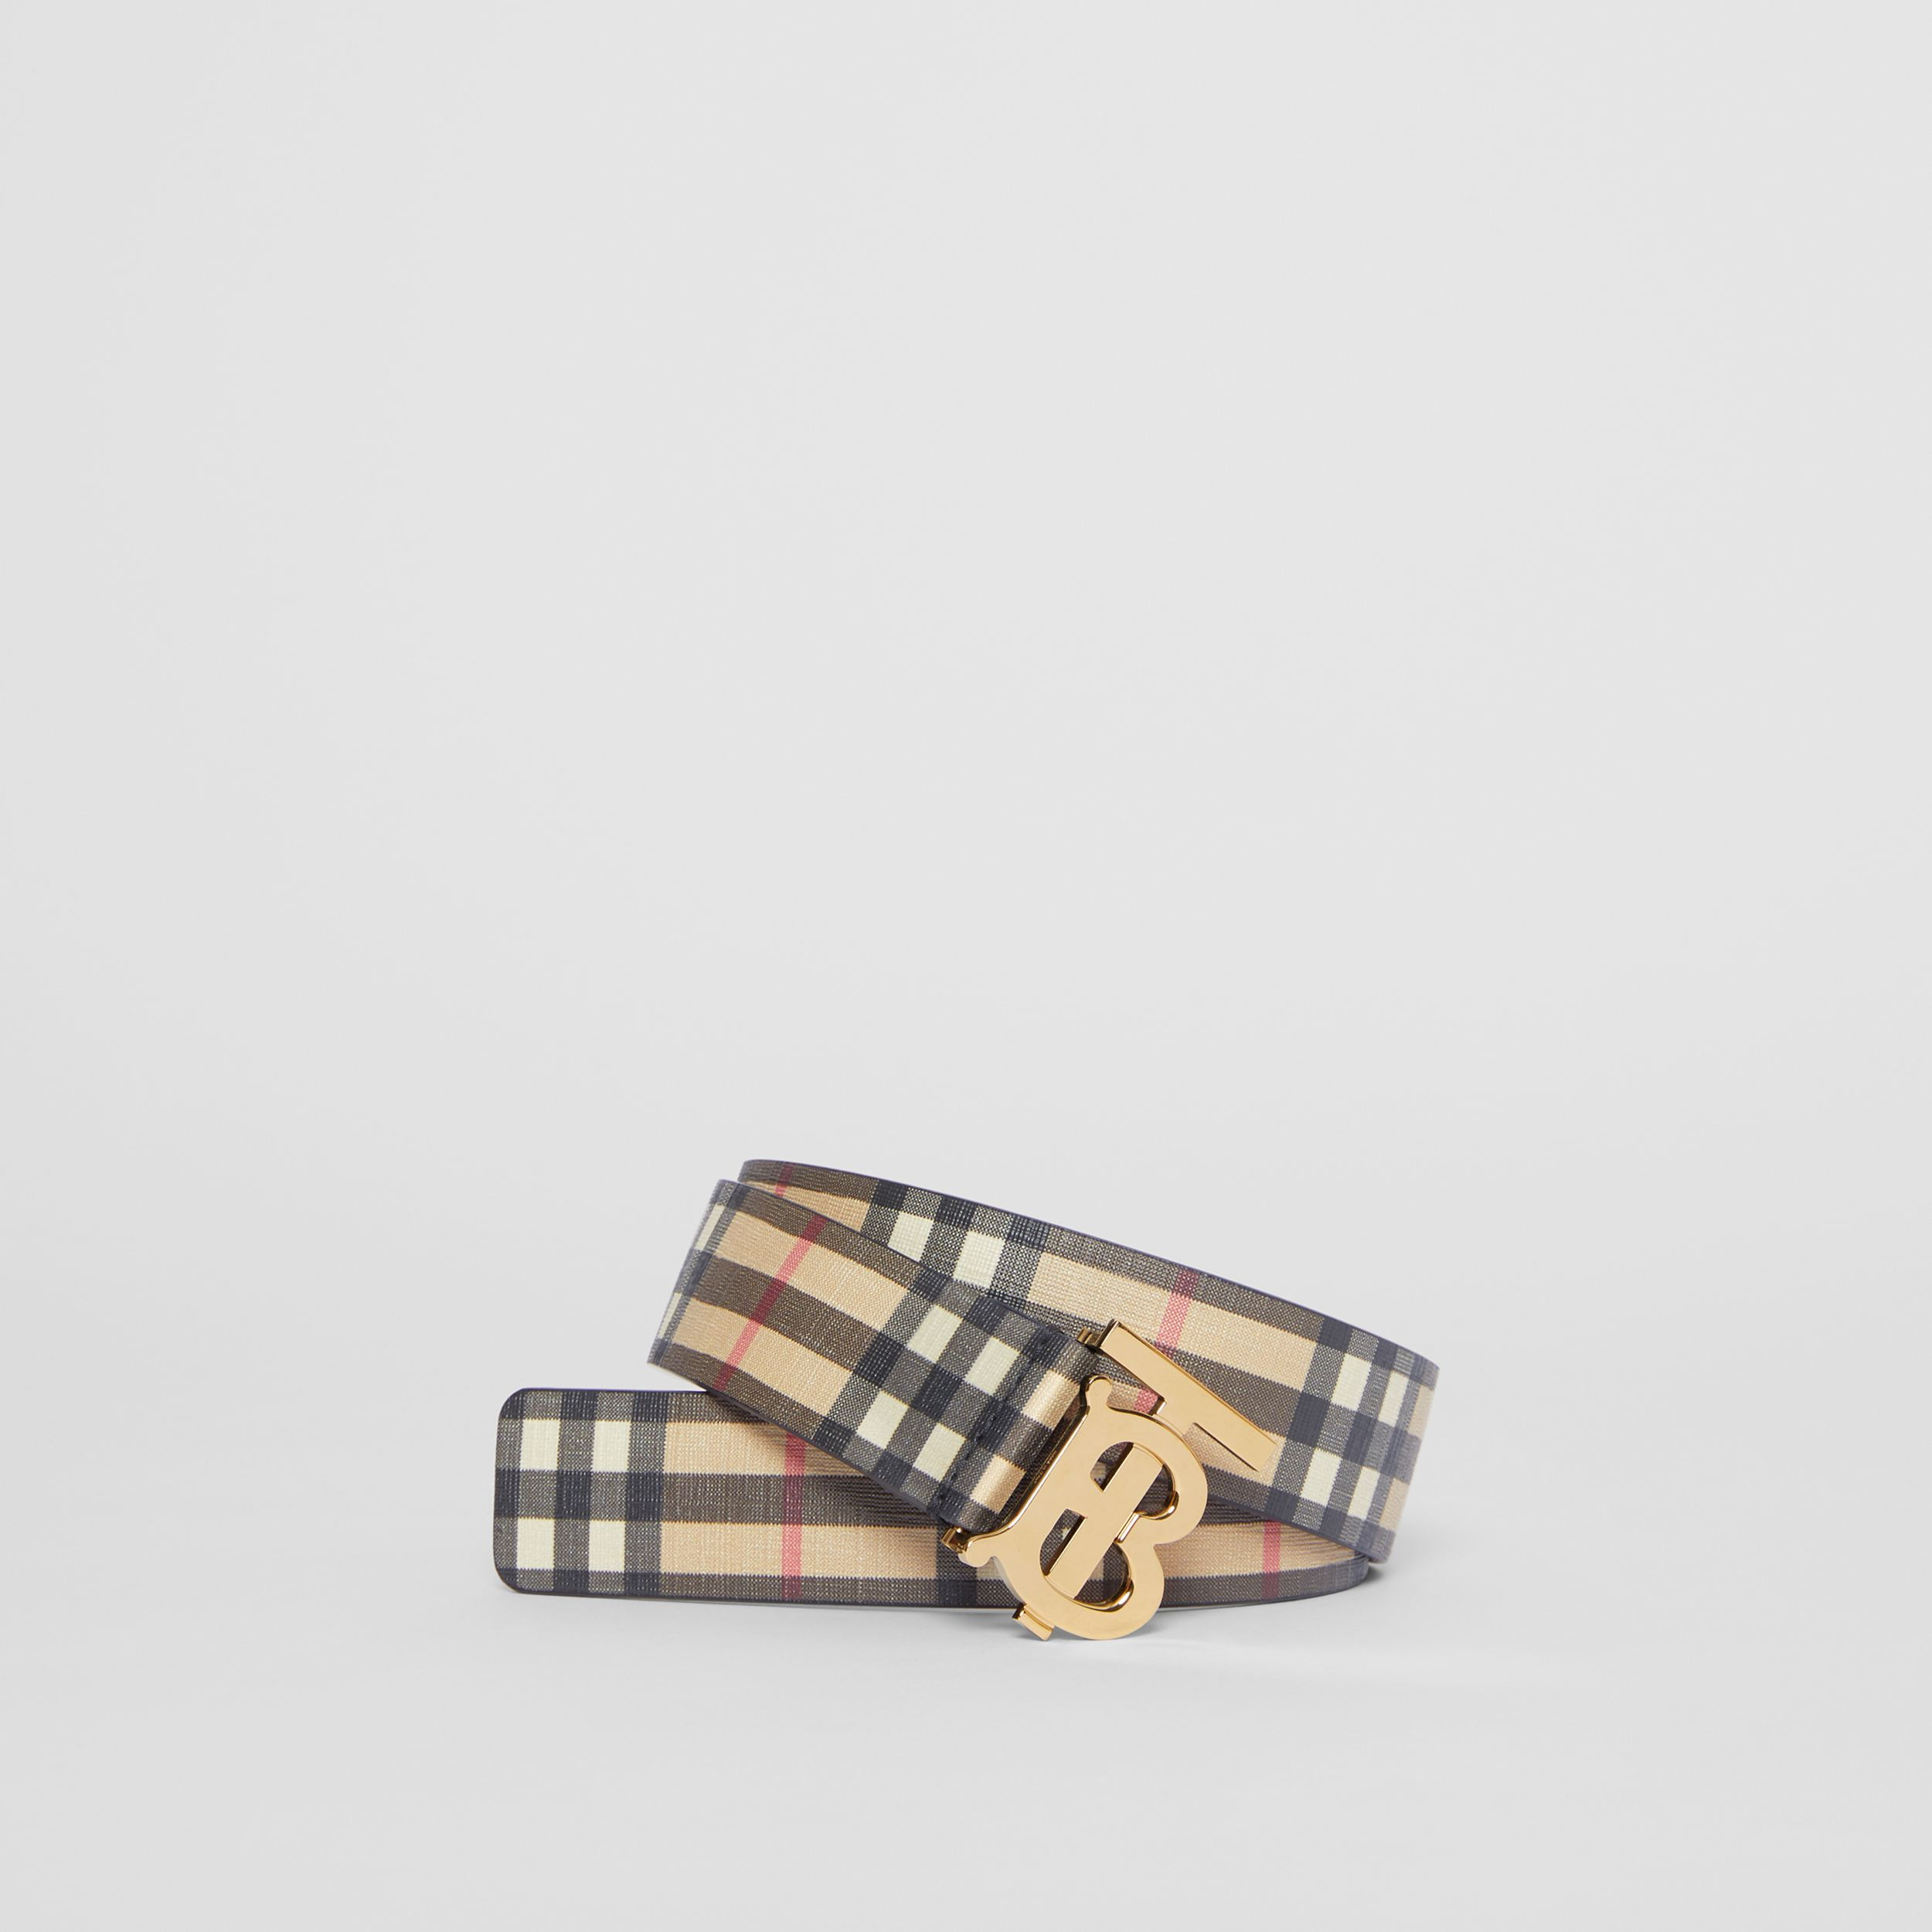 Monogram Motif Vintage Check E-canvas Belt in Archive Beige - Women | Burberry Hong Kong S.A.R. - 1